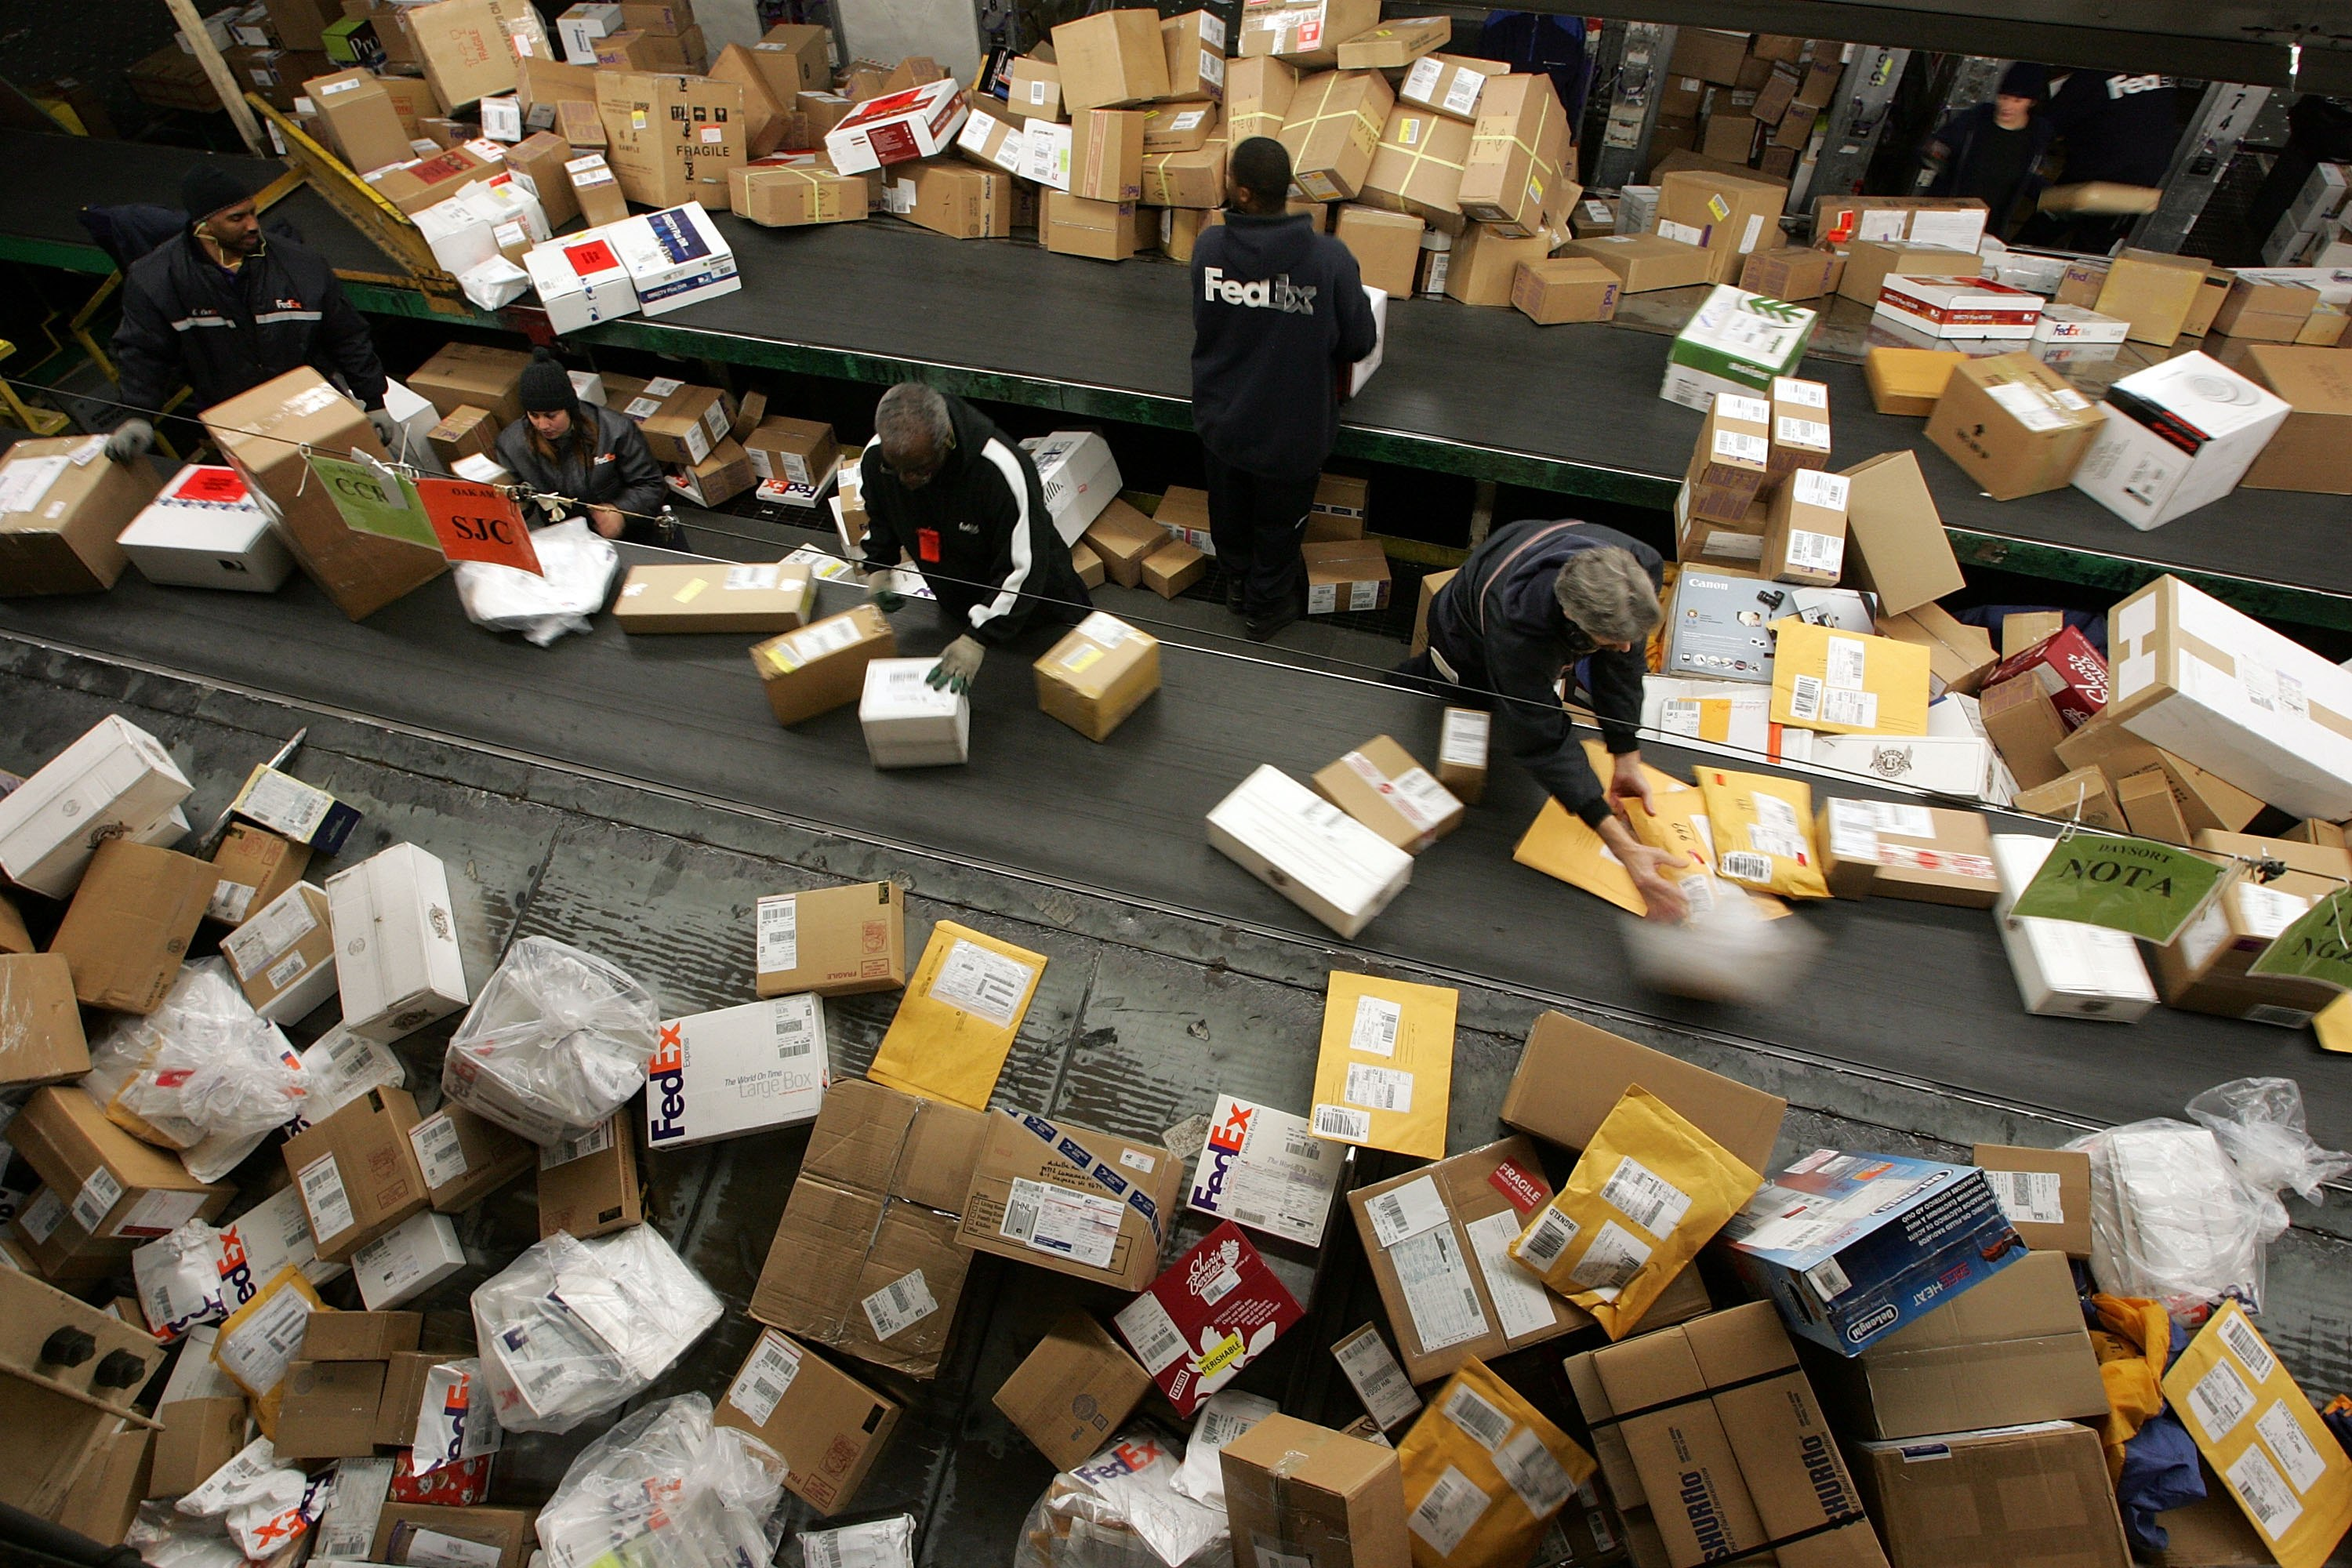 Not just seeds—all kinds of mystery packages are arriving from China